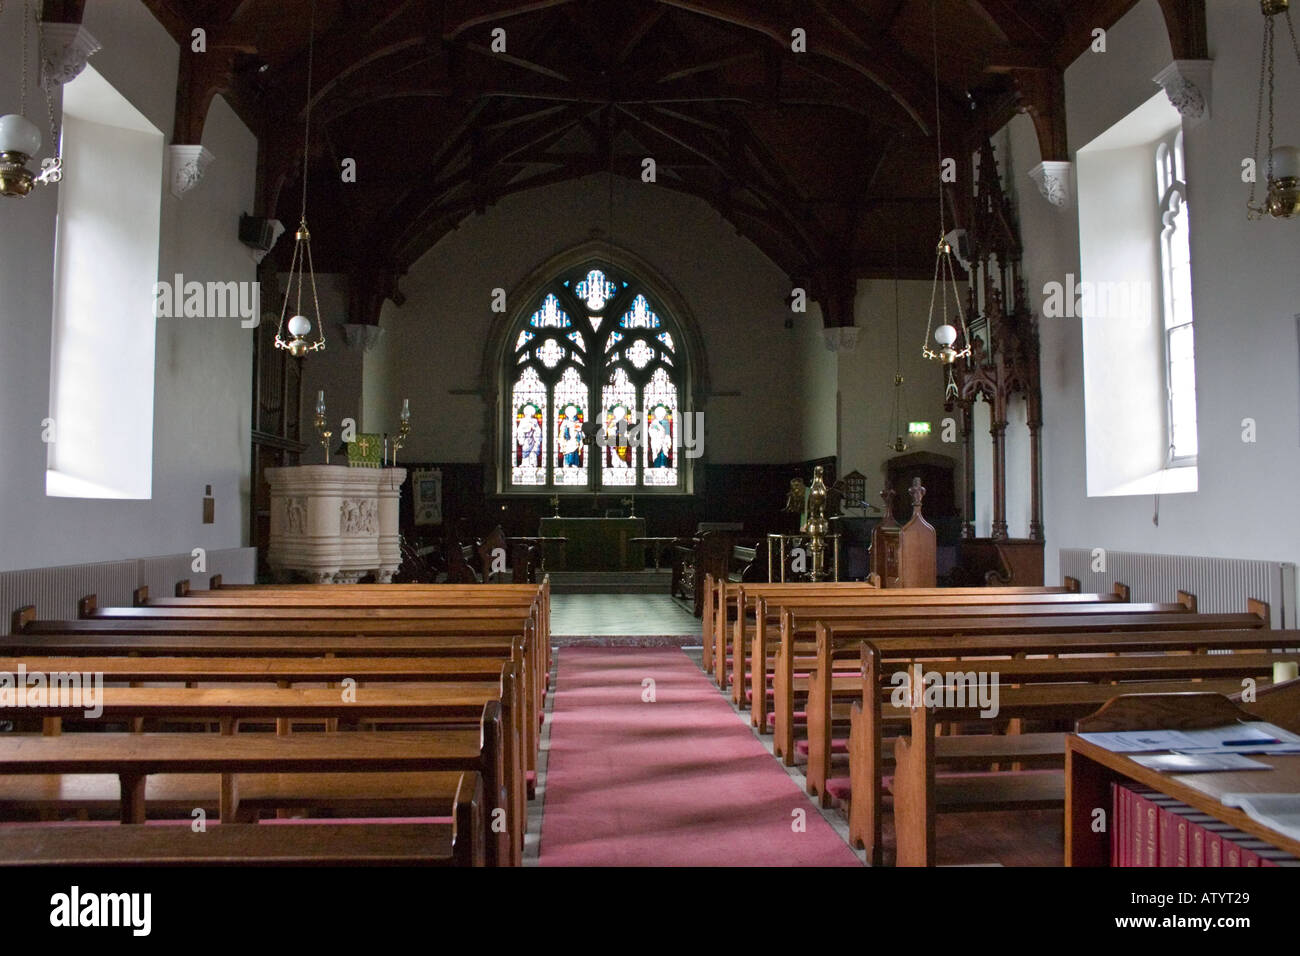 Rosscarbery Cathedral Interior, County Cork, Ireland - Stock Image